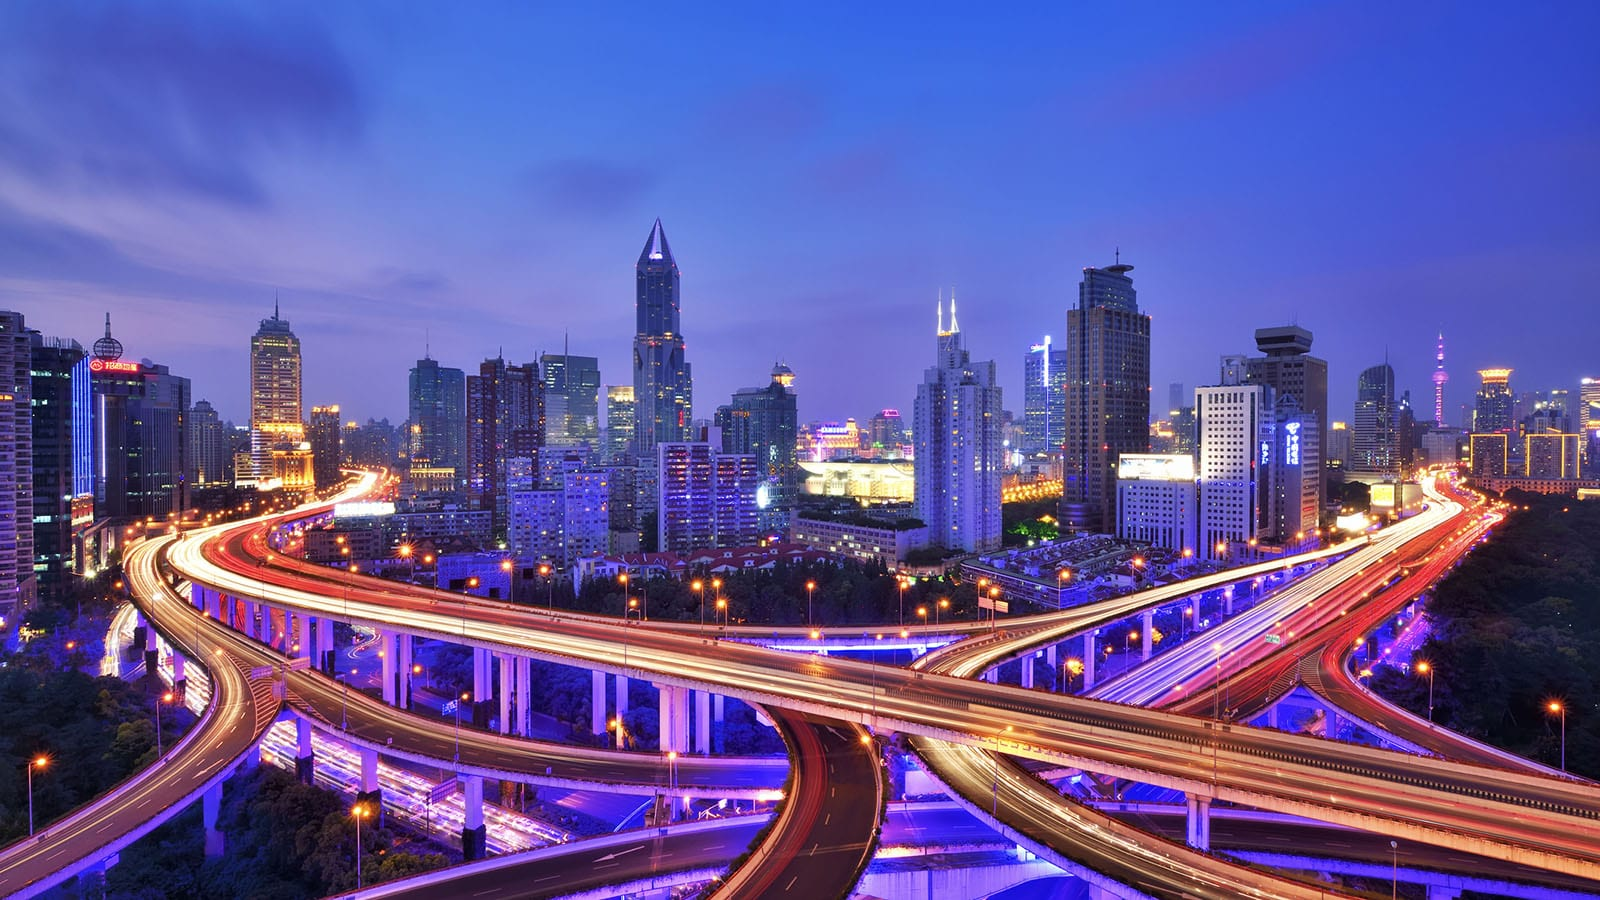 The overpass is the conjunction of the Yan'an Elevated Road and the North-South Elevated Road, Shanghai, China.